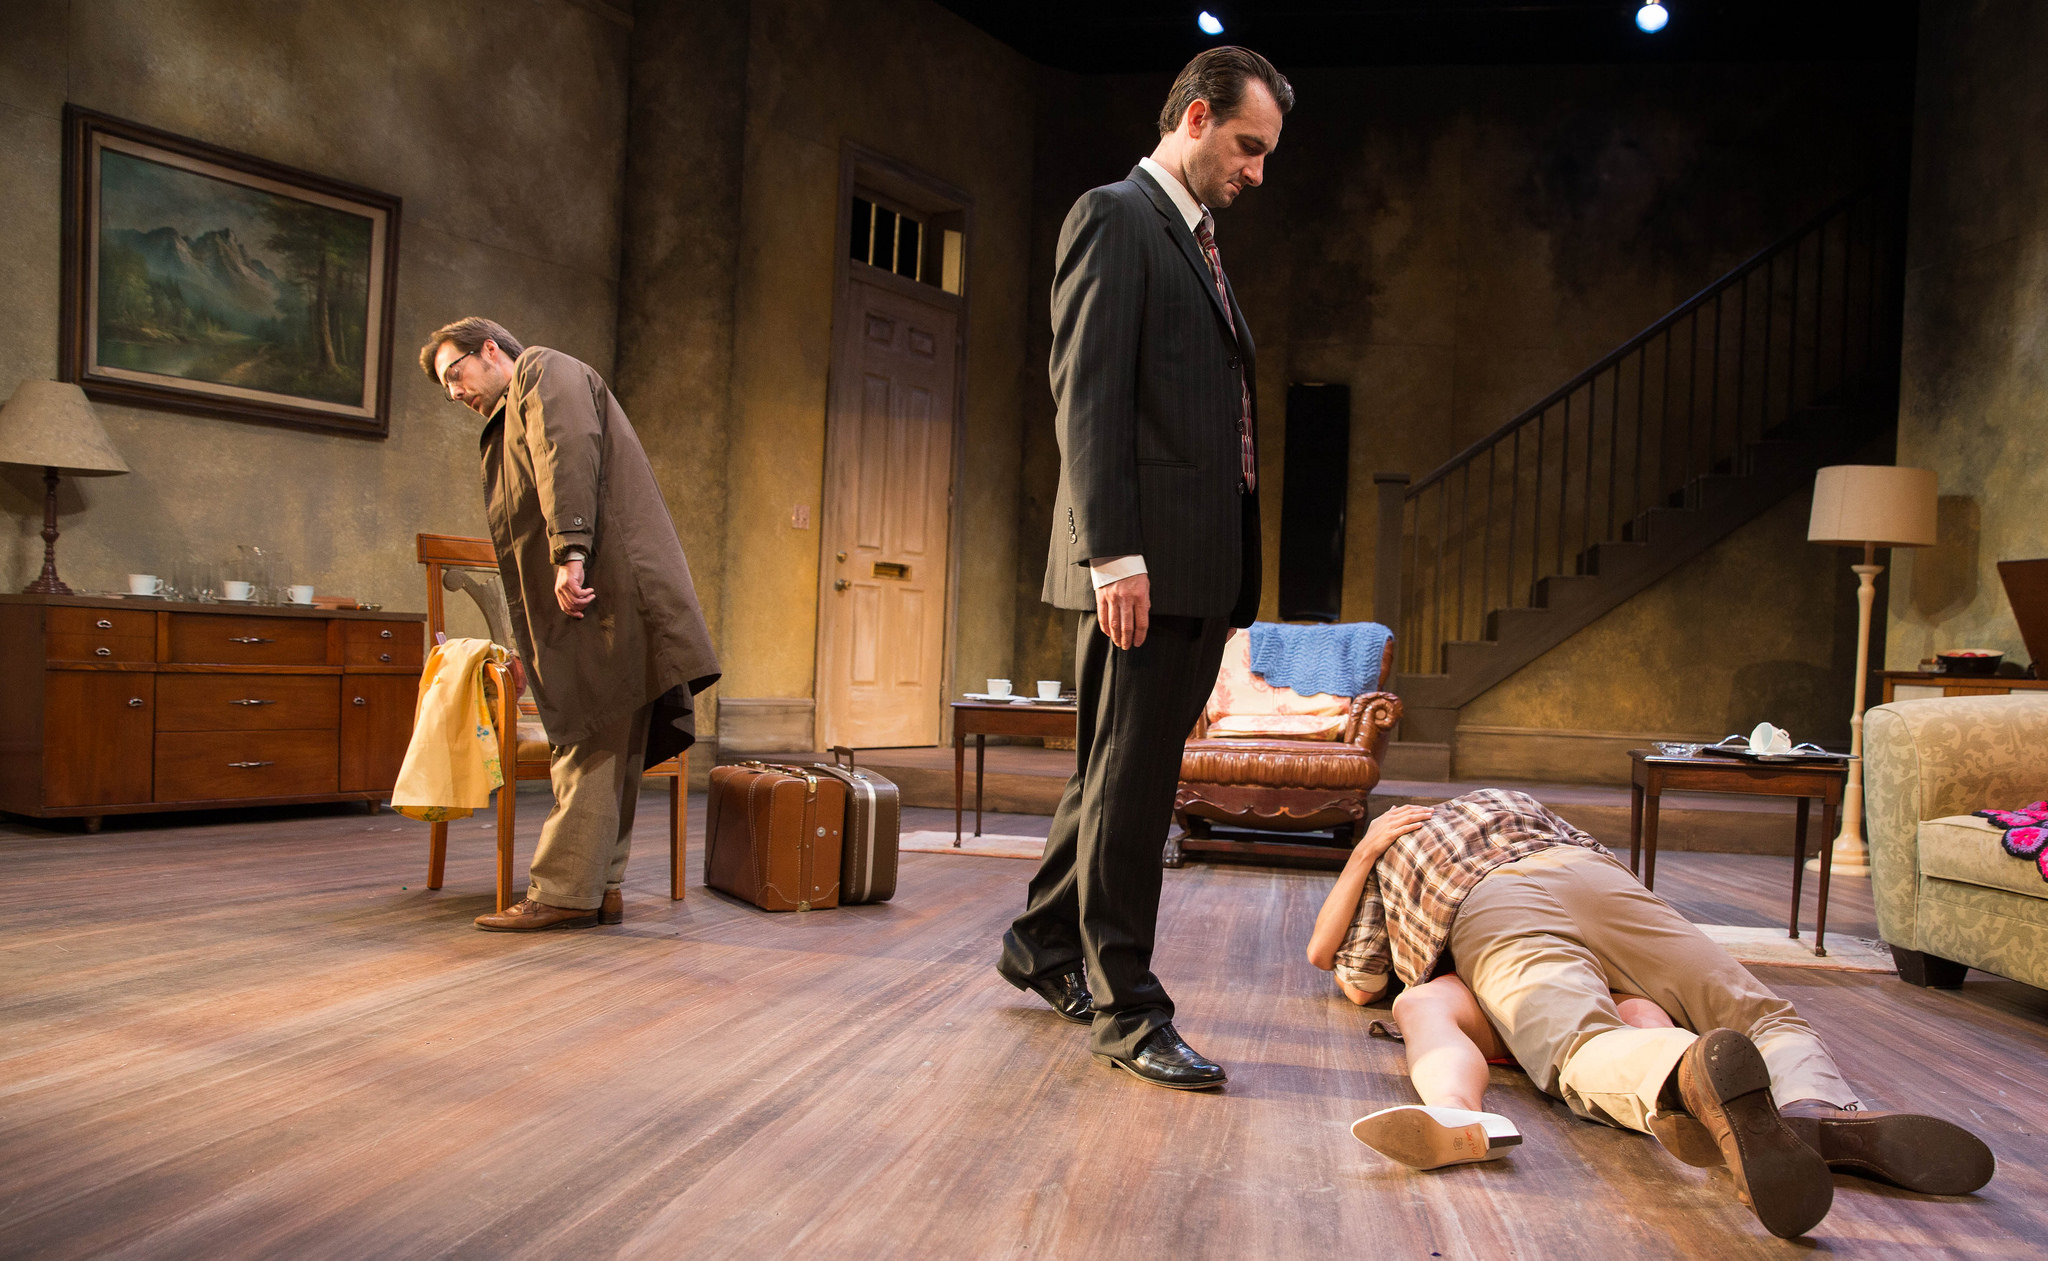 an analysis of the homecoming by harold pinter A slight different type of analysis can be found in the book harold pinter by mark batty which is not based on the appreciation of the textuality of the script but on the theatricality of the play in performance.